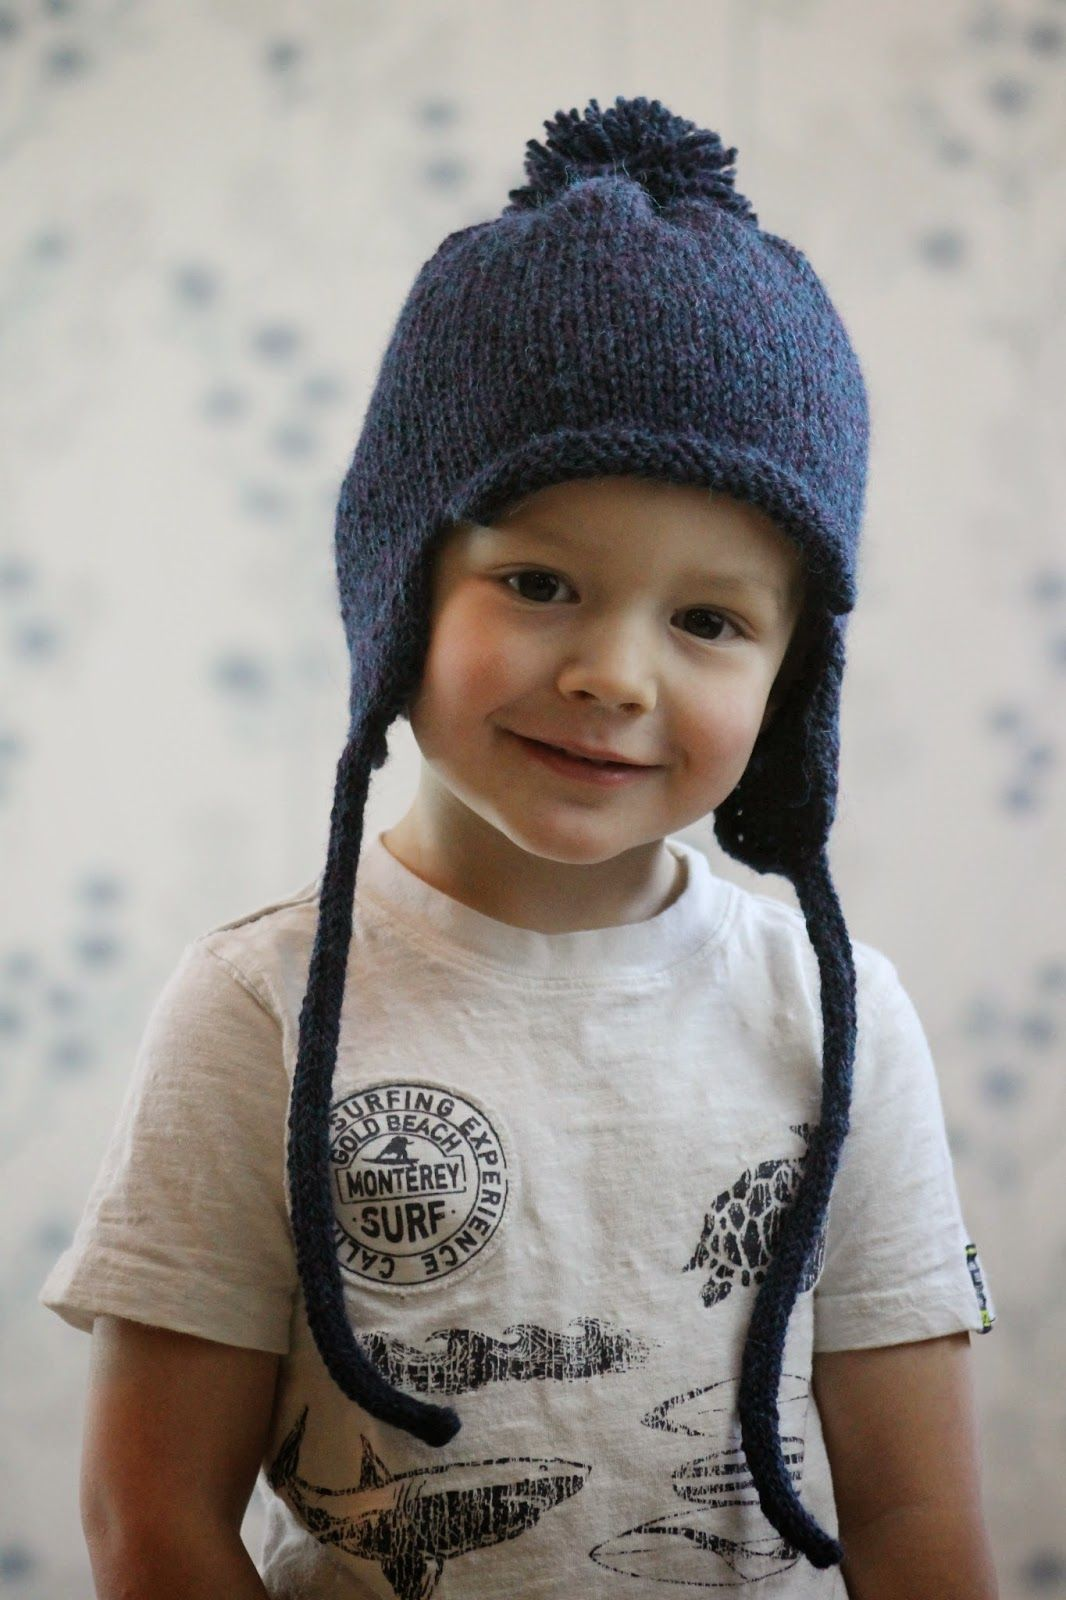 All In The Family Earflap Hat Baby Hats Knitting Knitted Hats Knitted Hats Kids